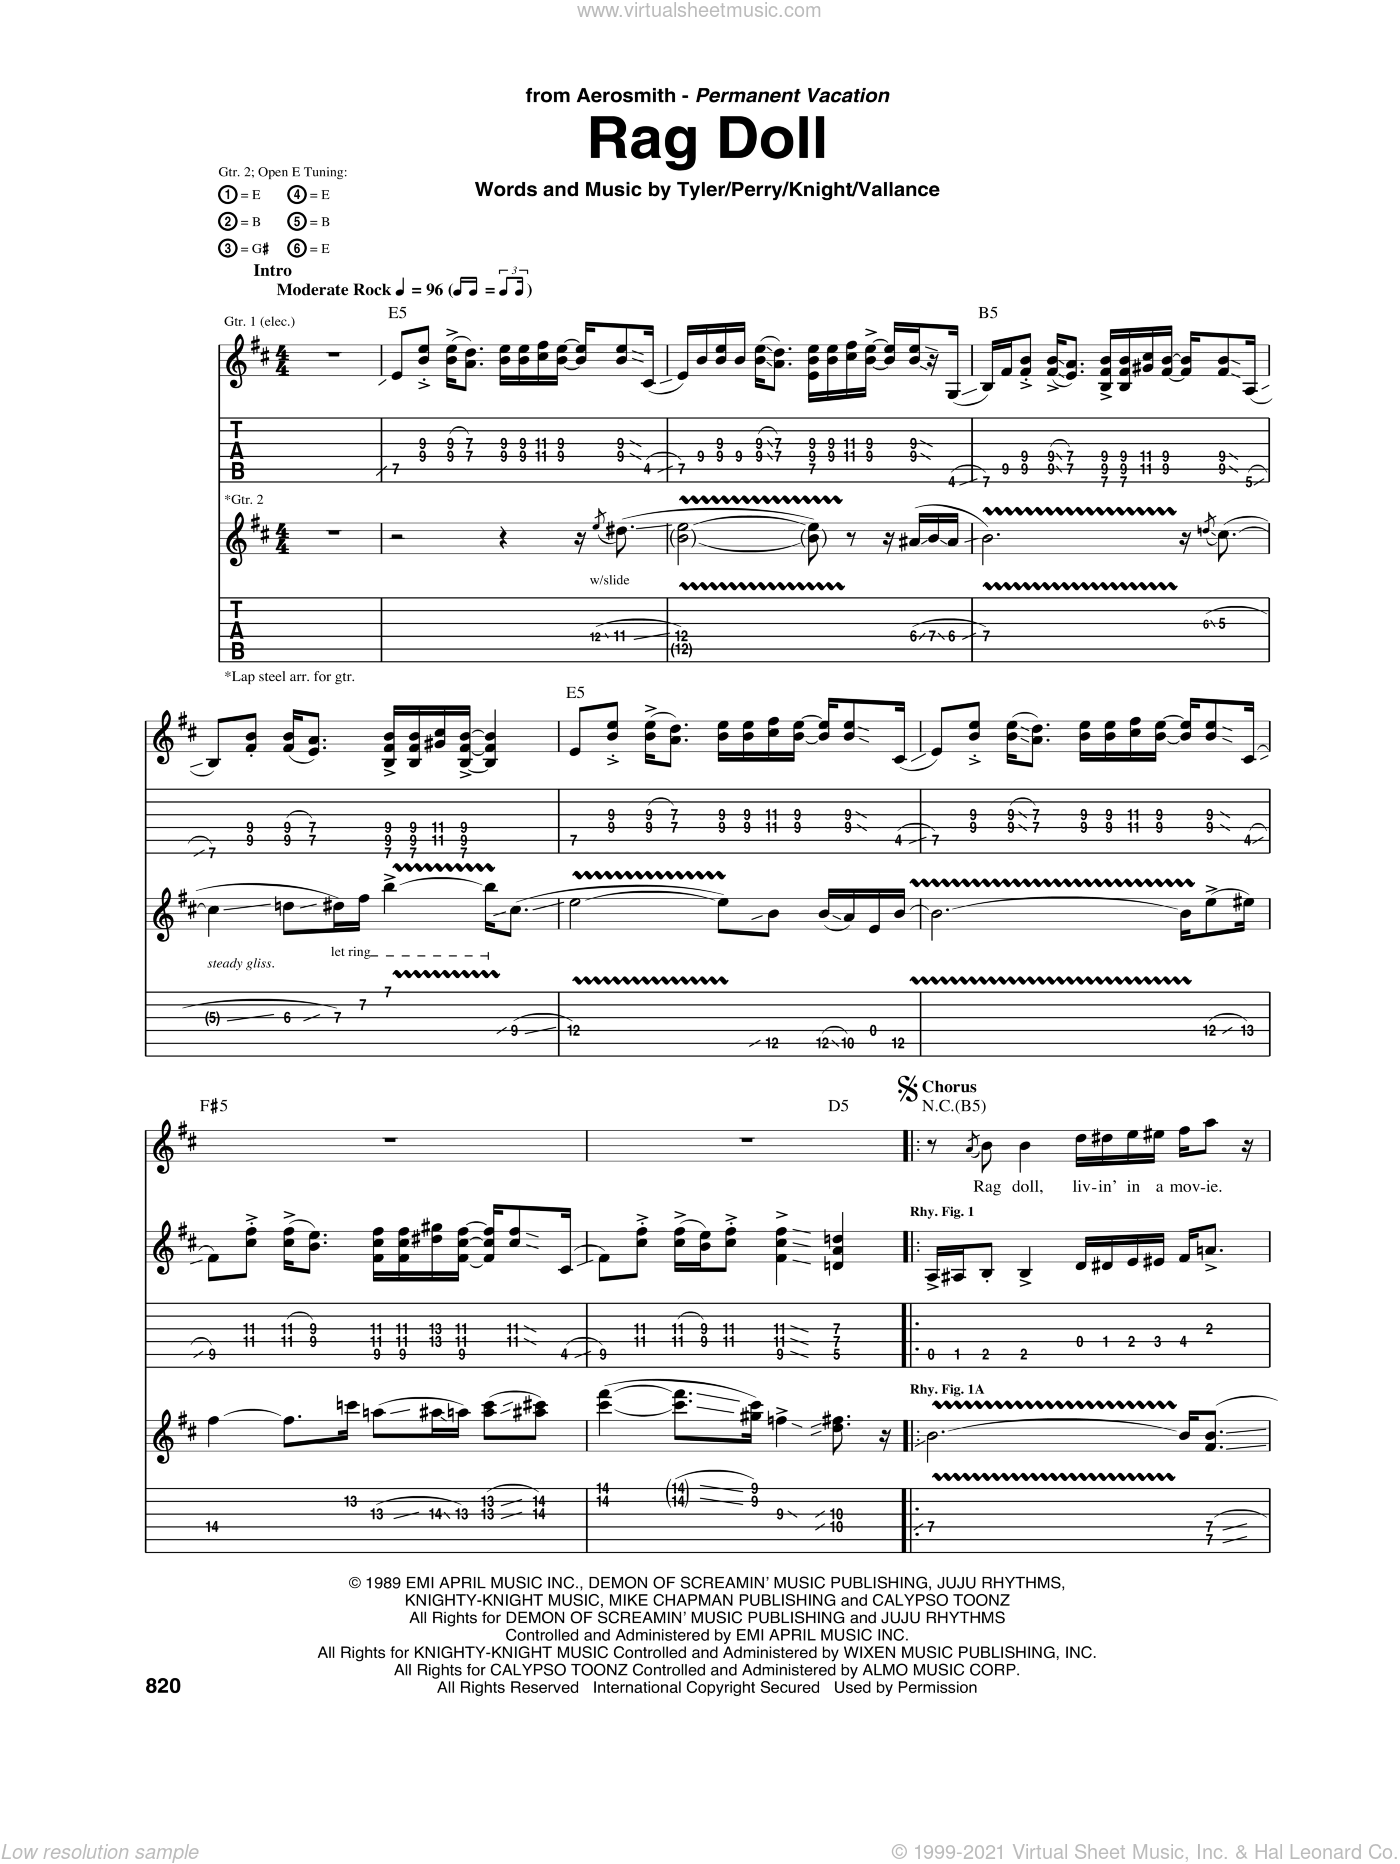 Rag Doll sheet music for guitar (tablature) by Aerosmith and Jim Vallance